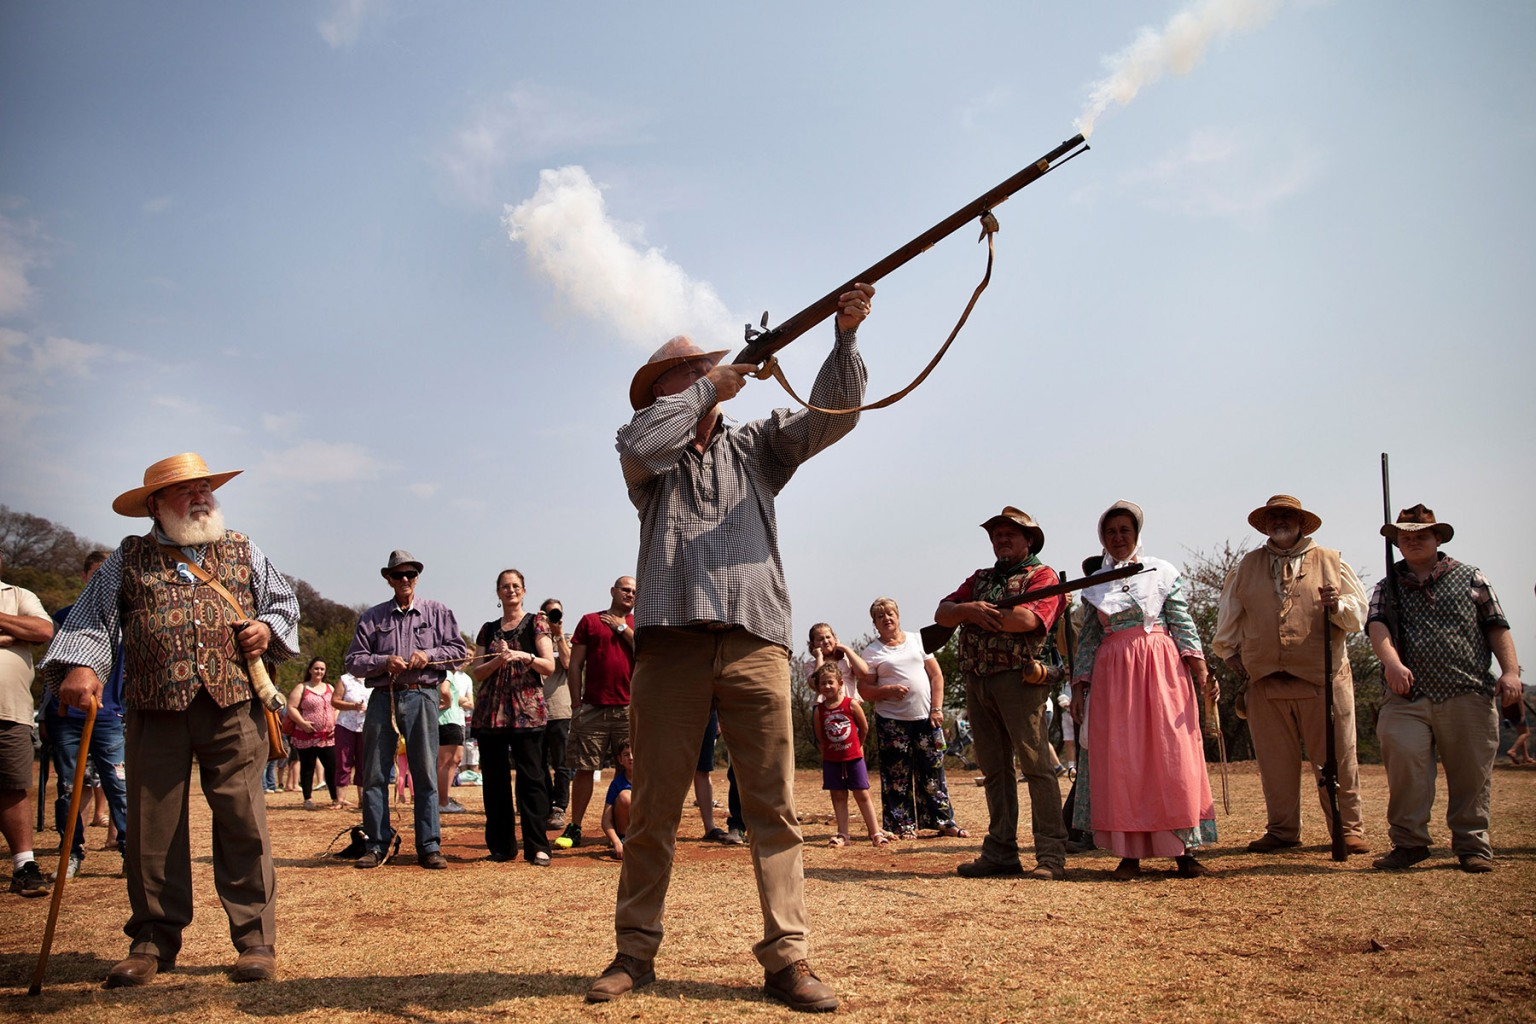 A man dressed in traditional Voortrekker attire fires a Flintlock gun at the Voortrekker Monument on Heritage Day in Pretoria on Sept. 24. FLORIAN CHOBLET/AFP/Getty Images